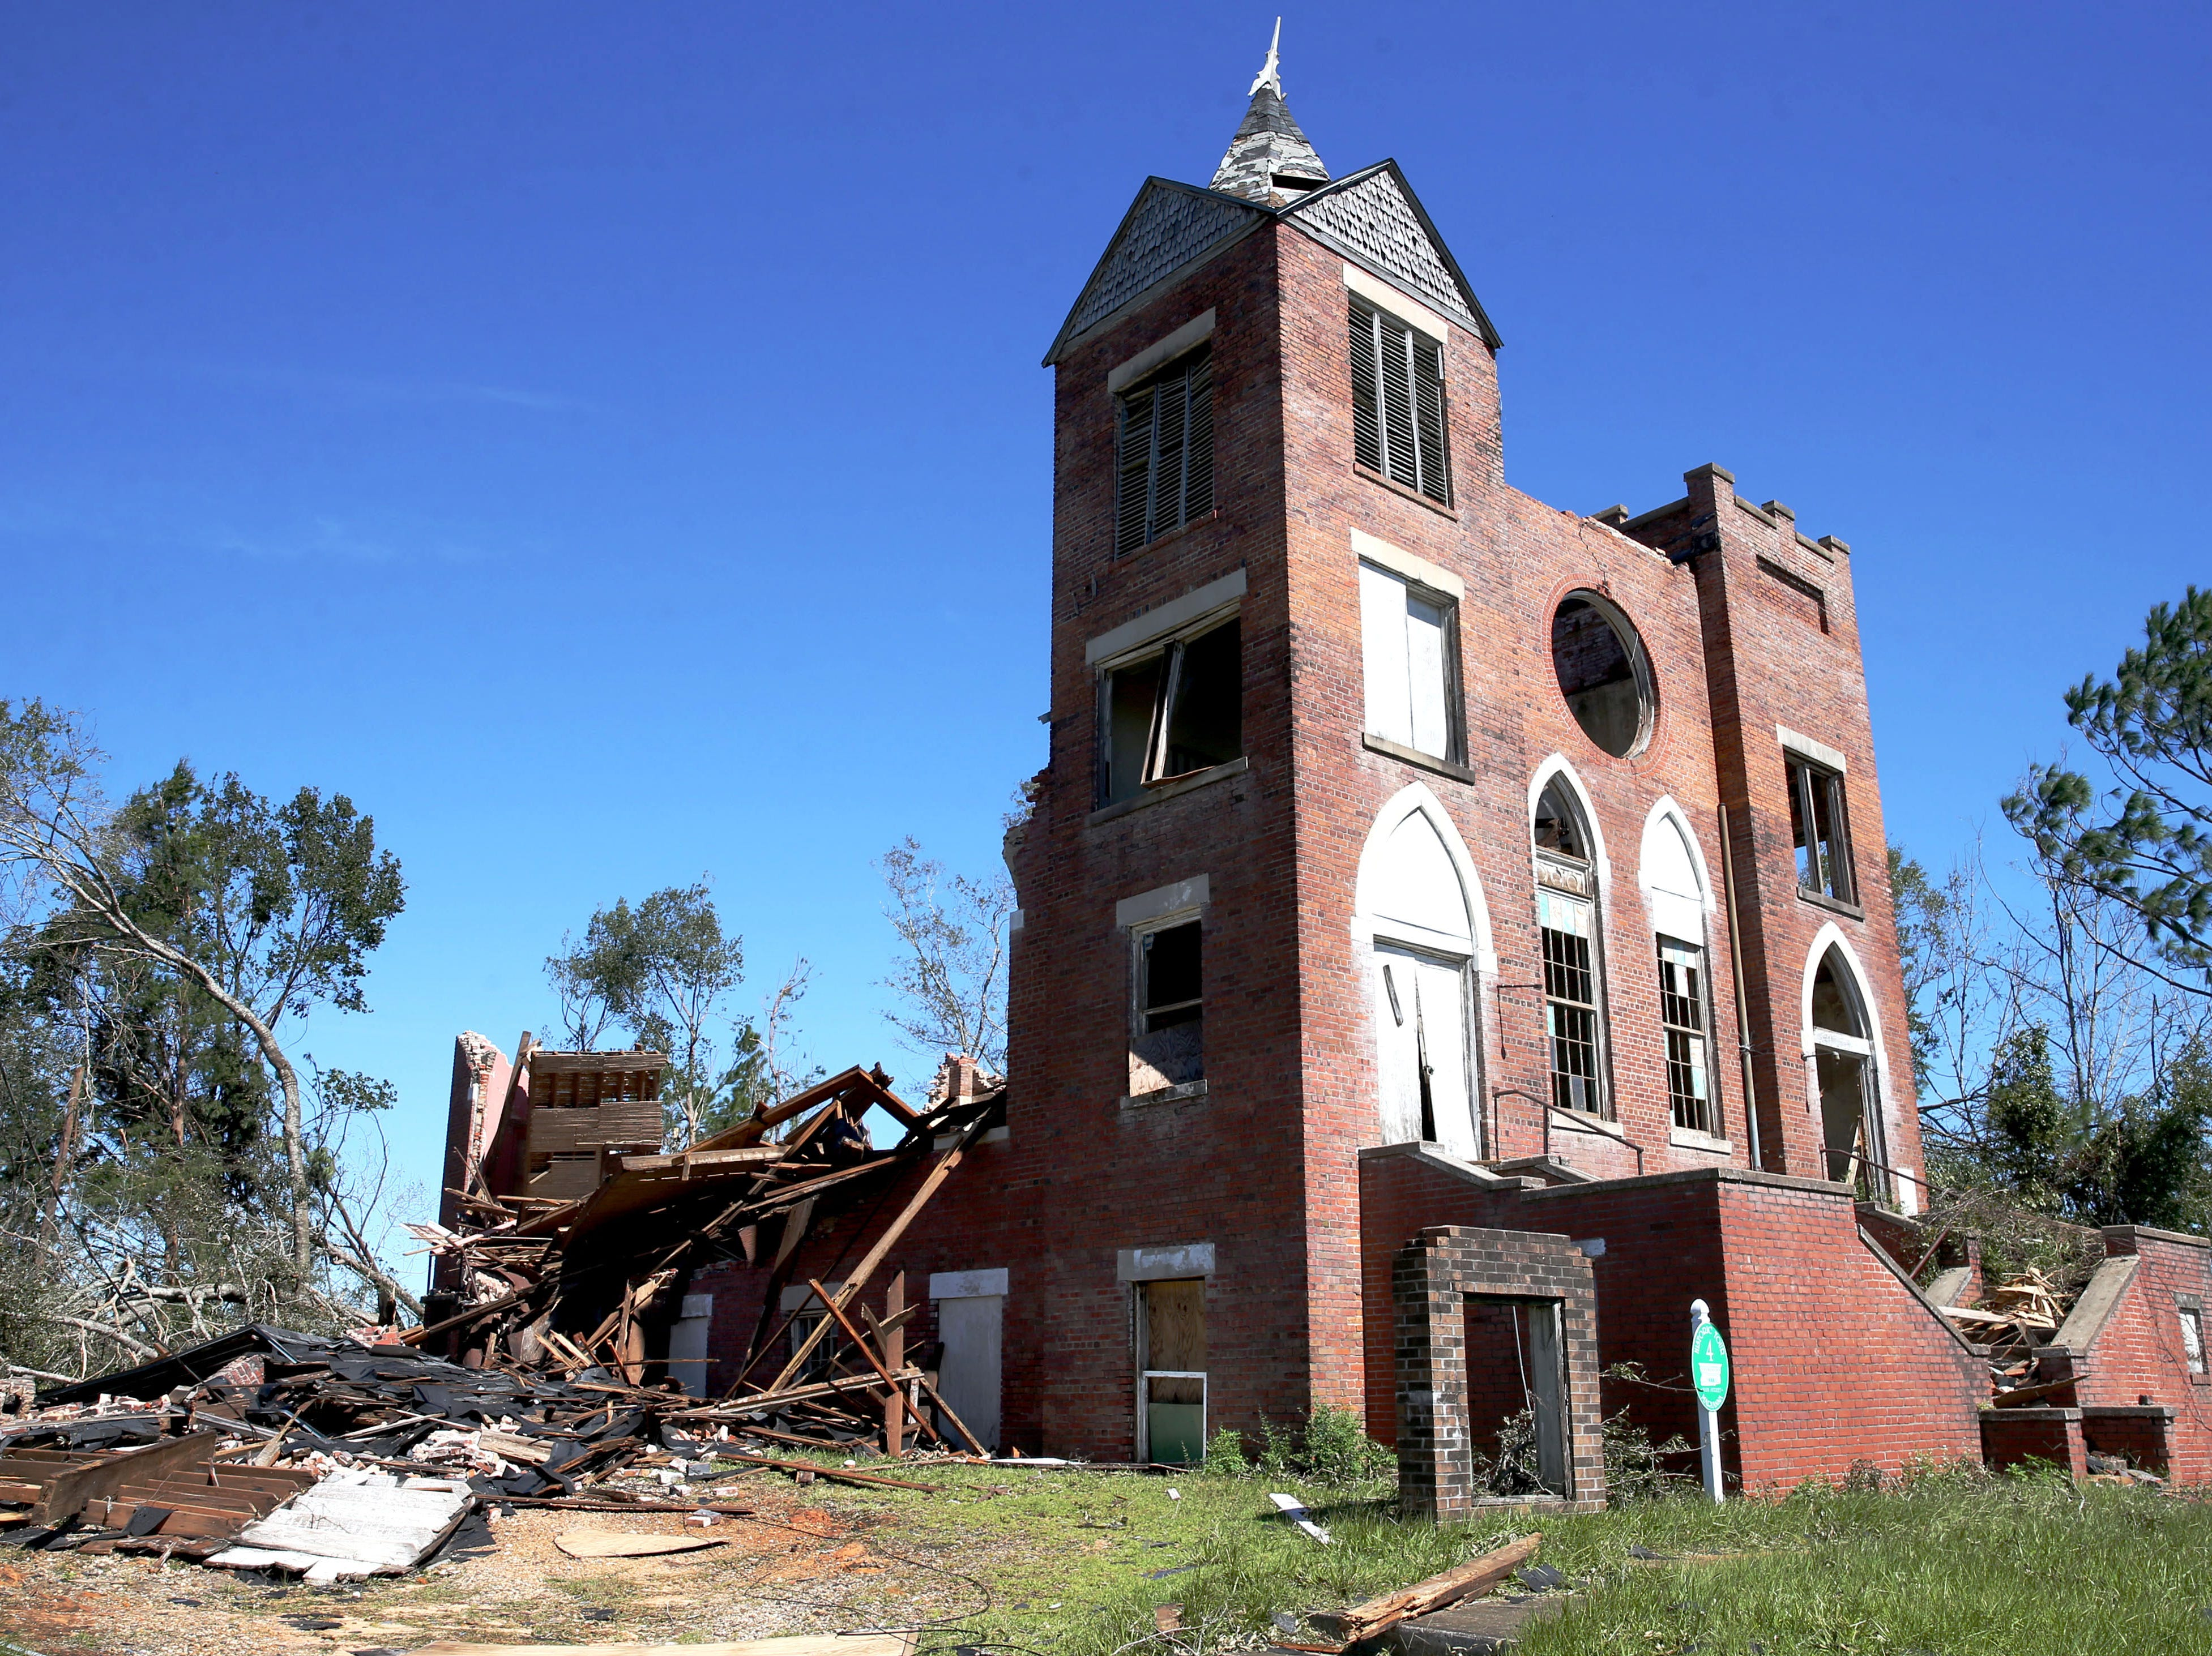 St. Luke's Baptist Church in Marianna, Fla. is left with shattered stained glass windows, missing doors and a pile of bricks after Hurricane Michael ripped through the panhandle on Wednesday, Oct. 10, 2018. The church was a stop on the historic tour through Marianna, that is before it had one wall left standing, Friday, Oct. 12, 2018.